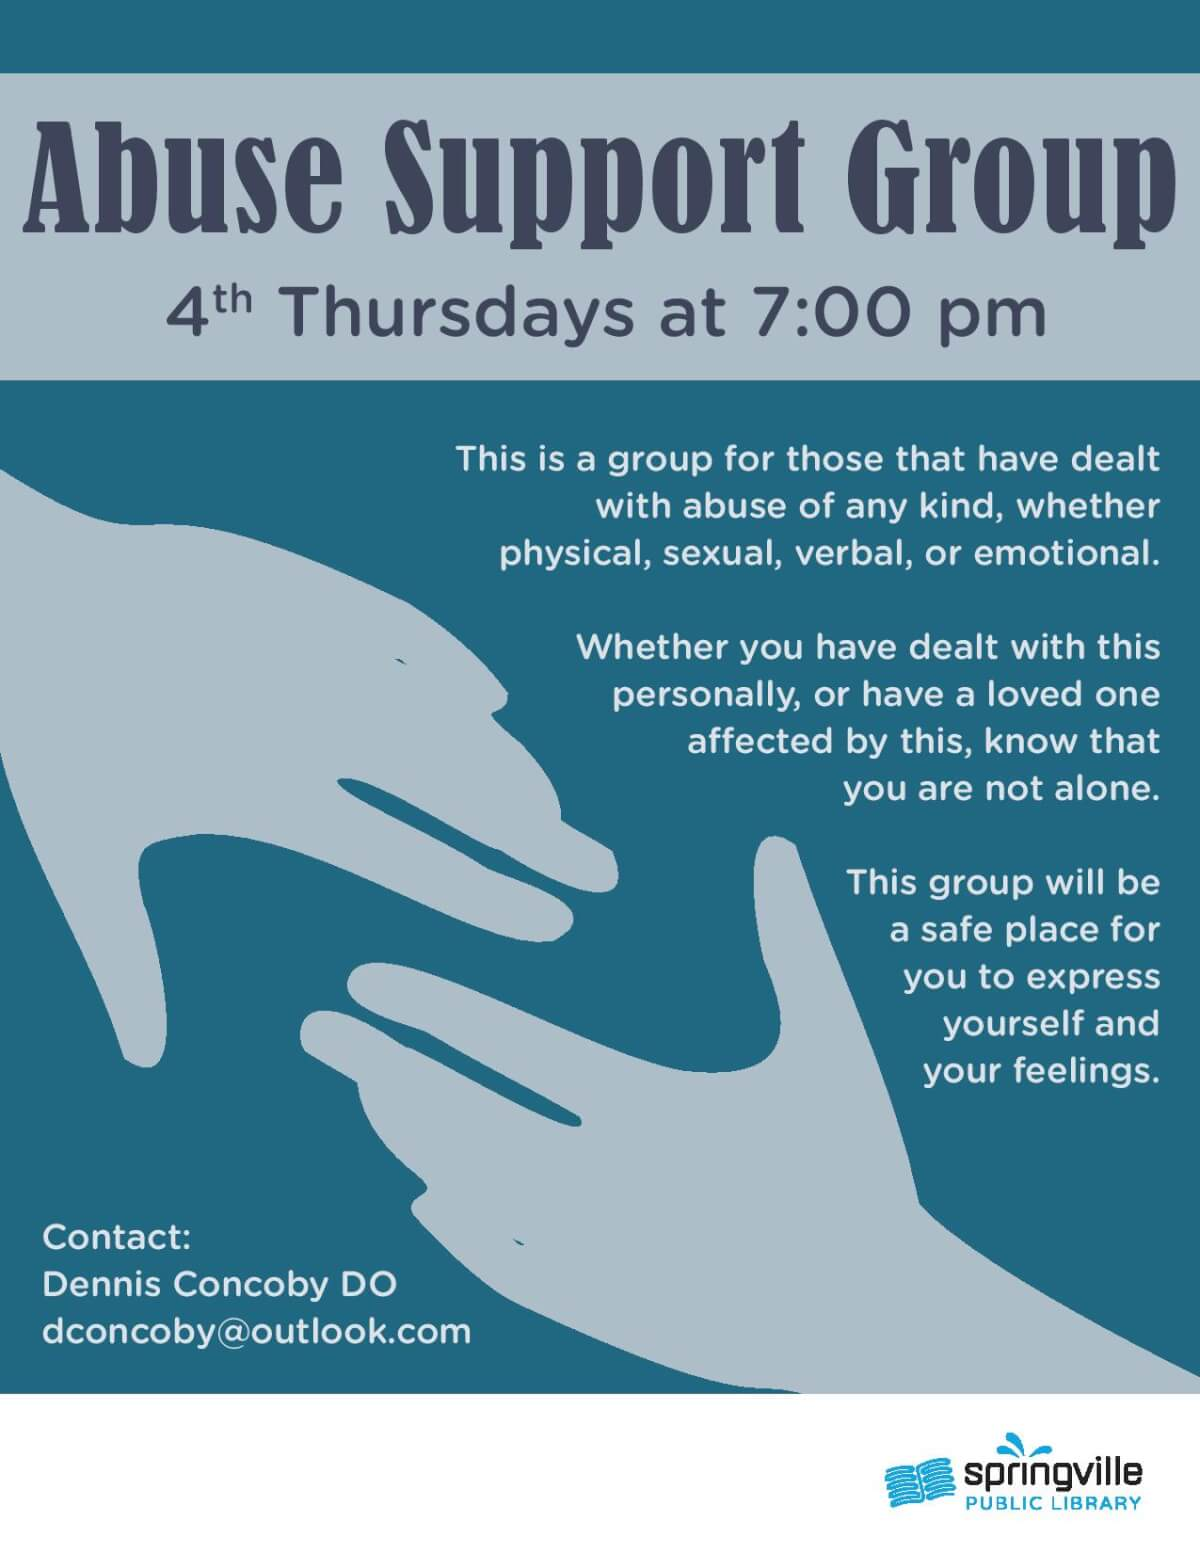 Abuse Support Group @ Springville Library